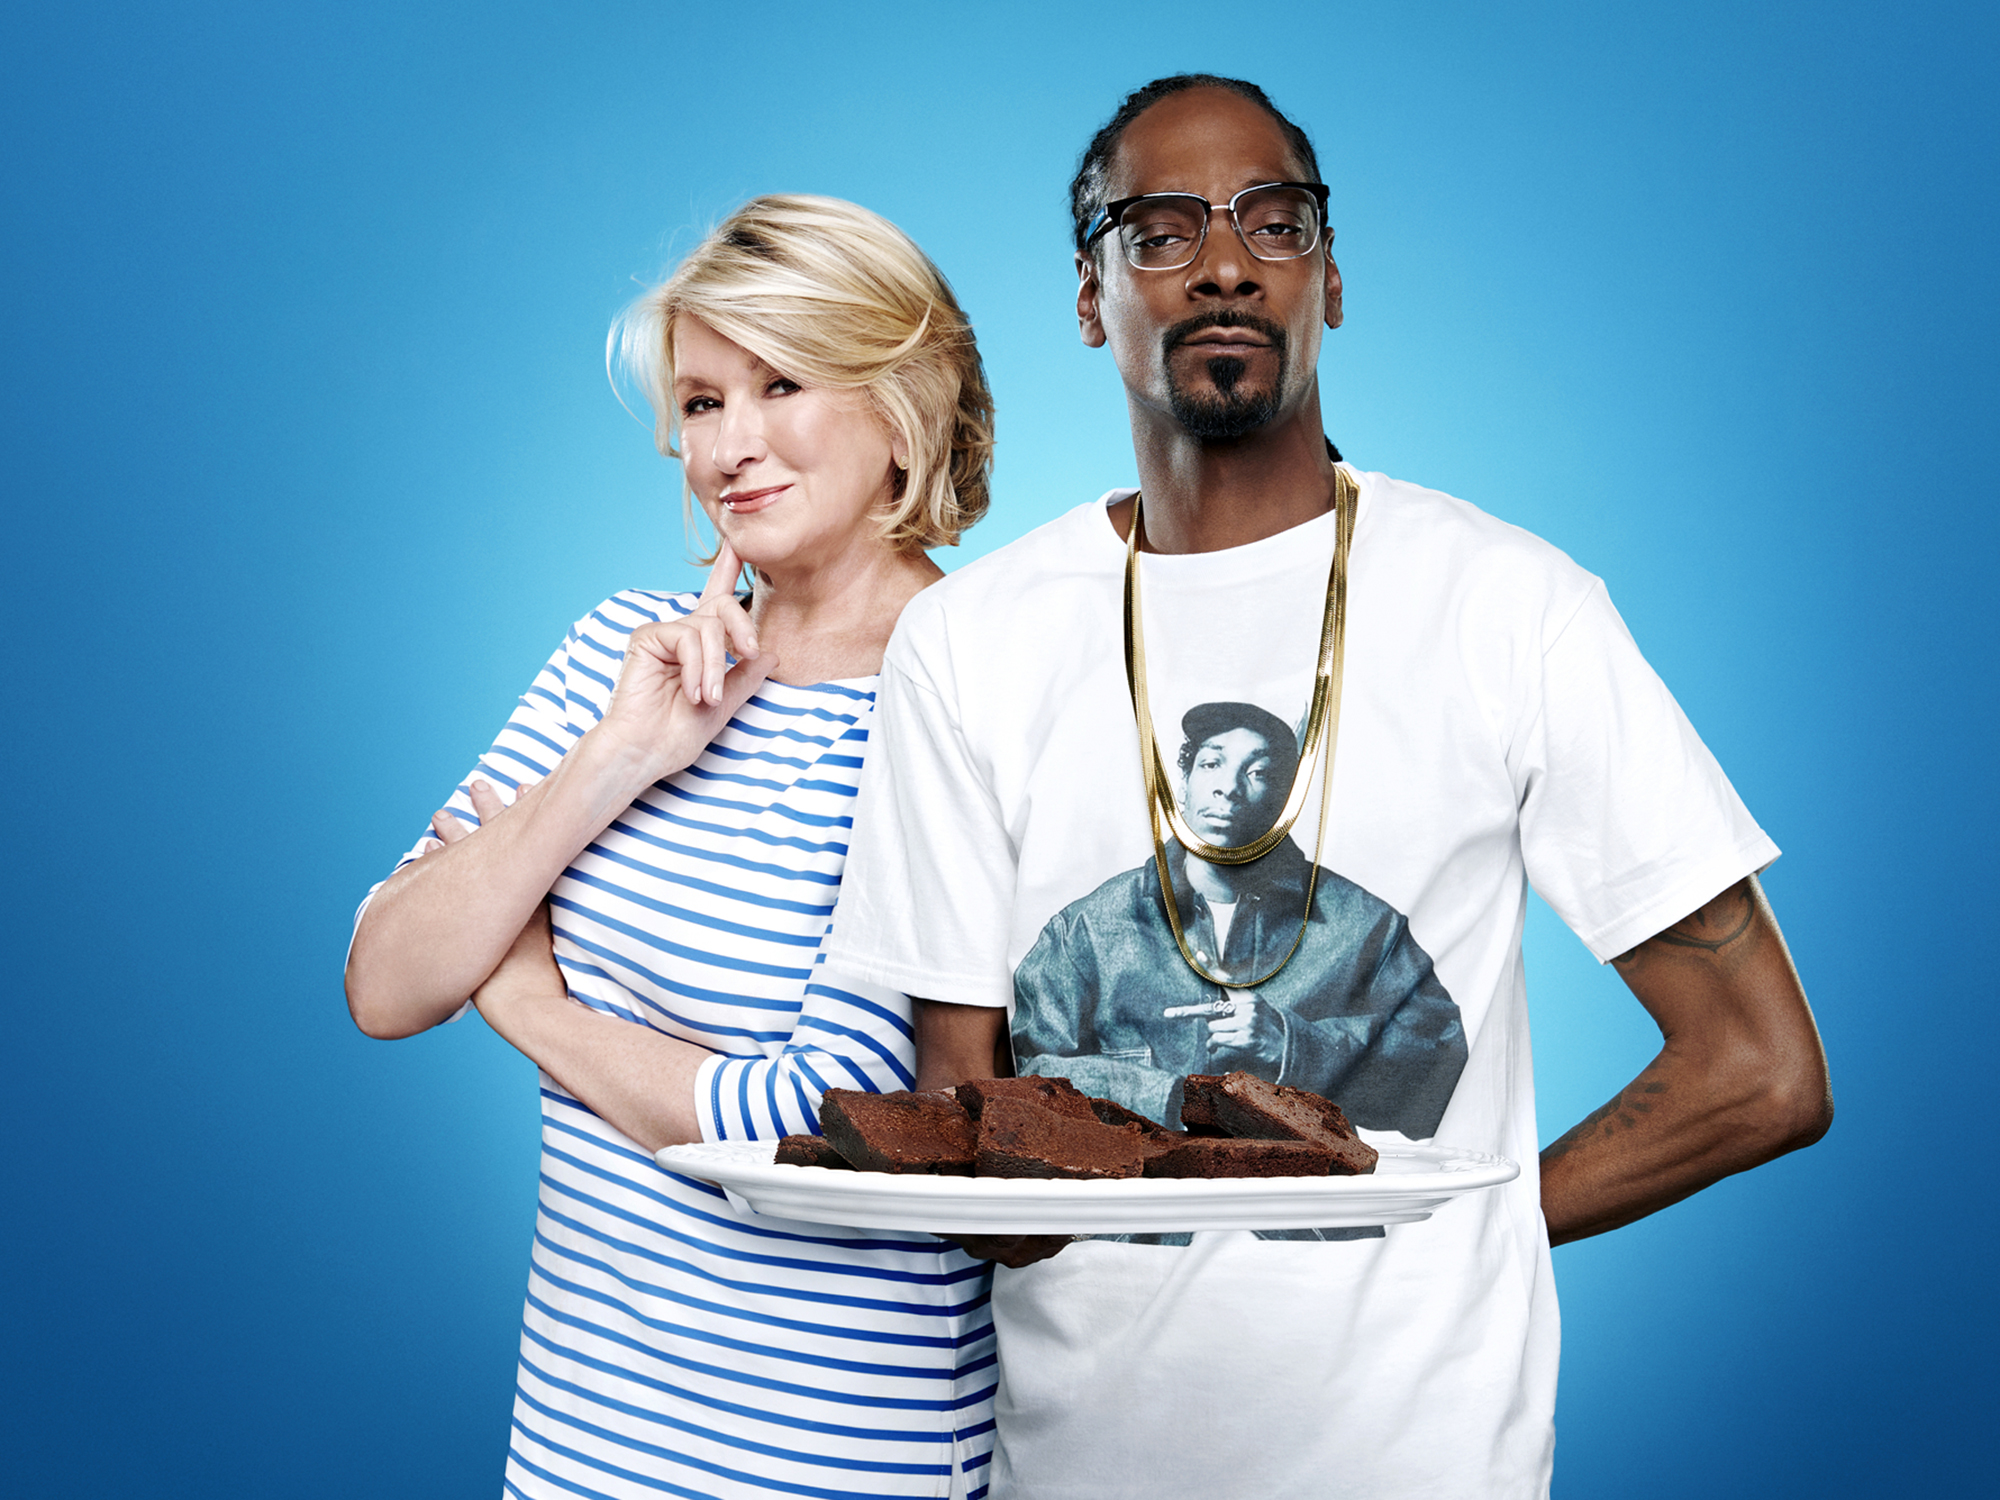 Martha Stewart and Snoop Dogg Return With 'Potluck Party Challenge'